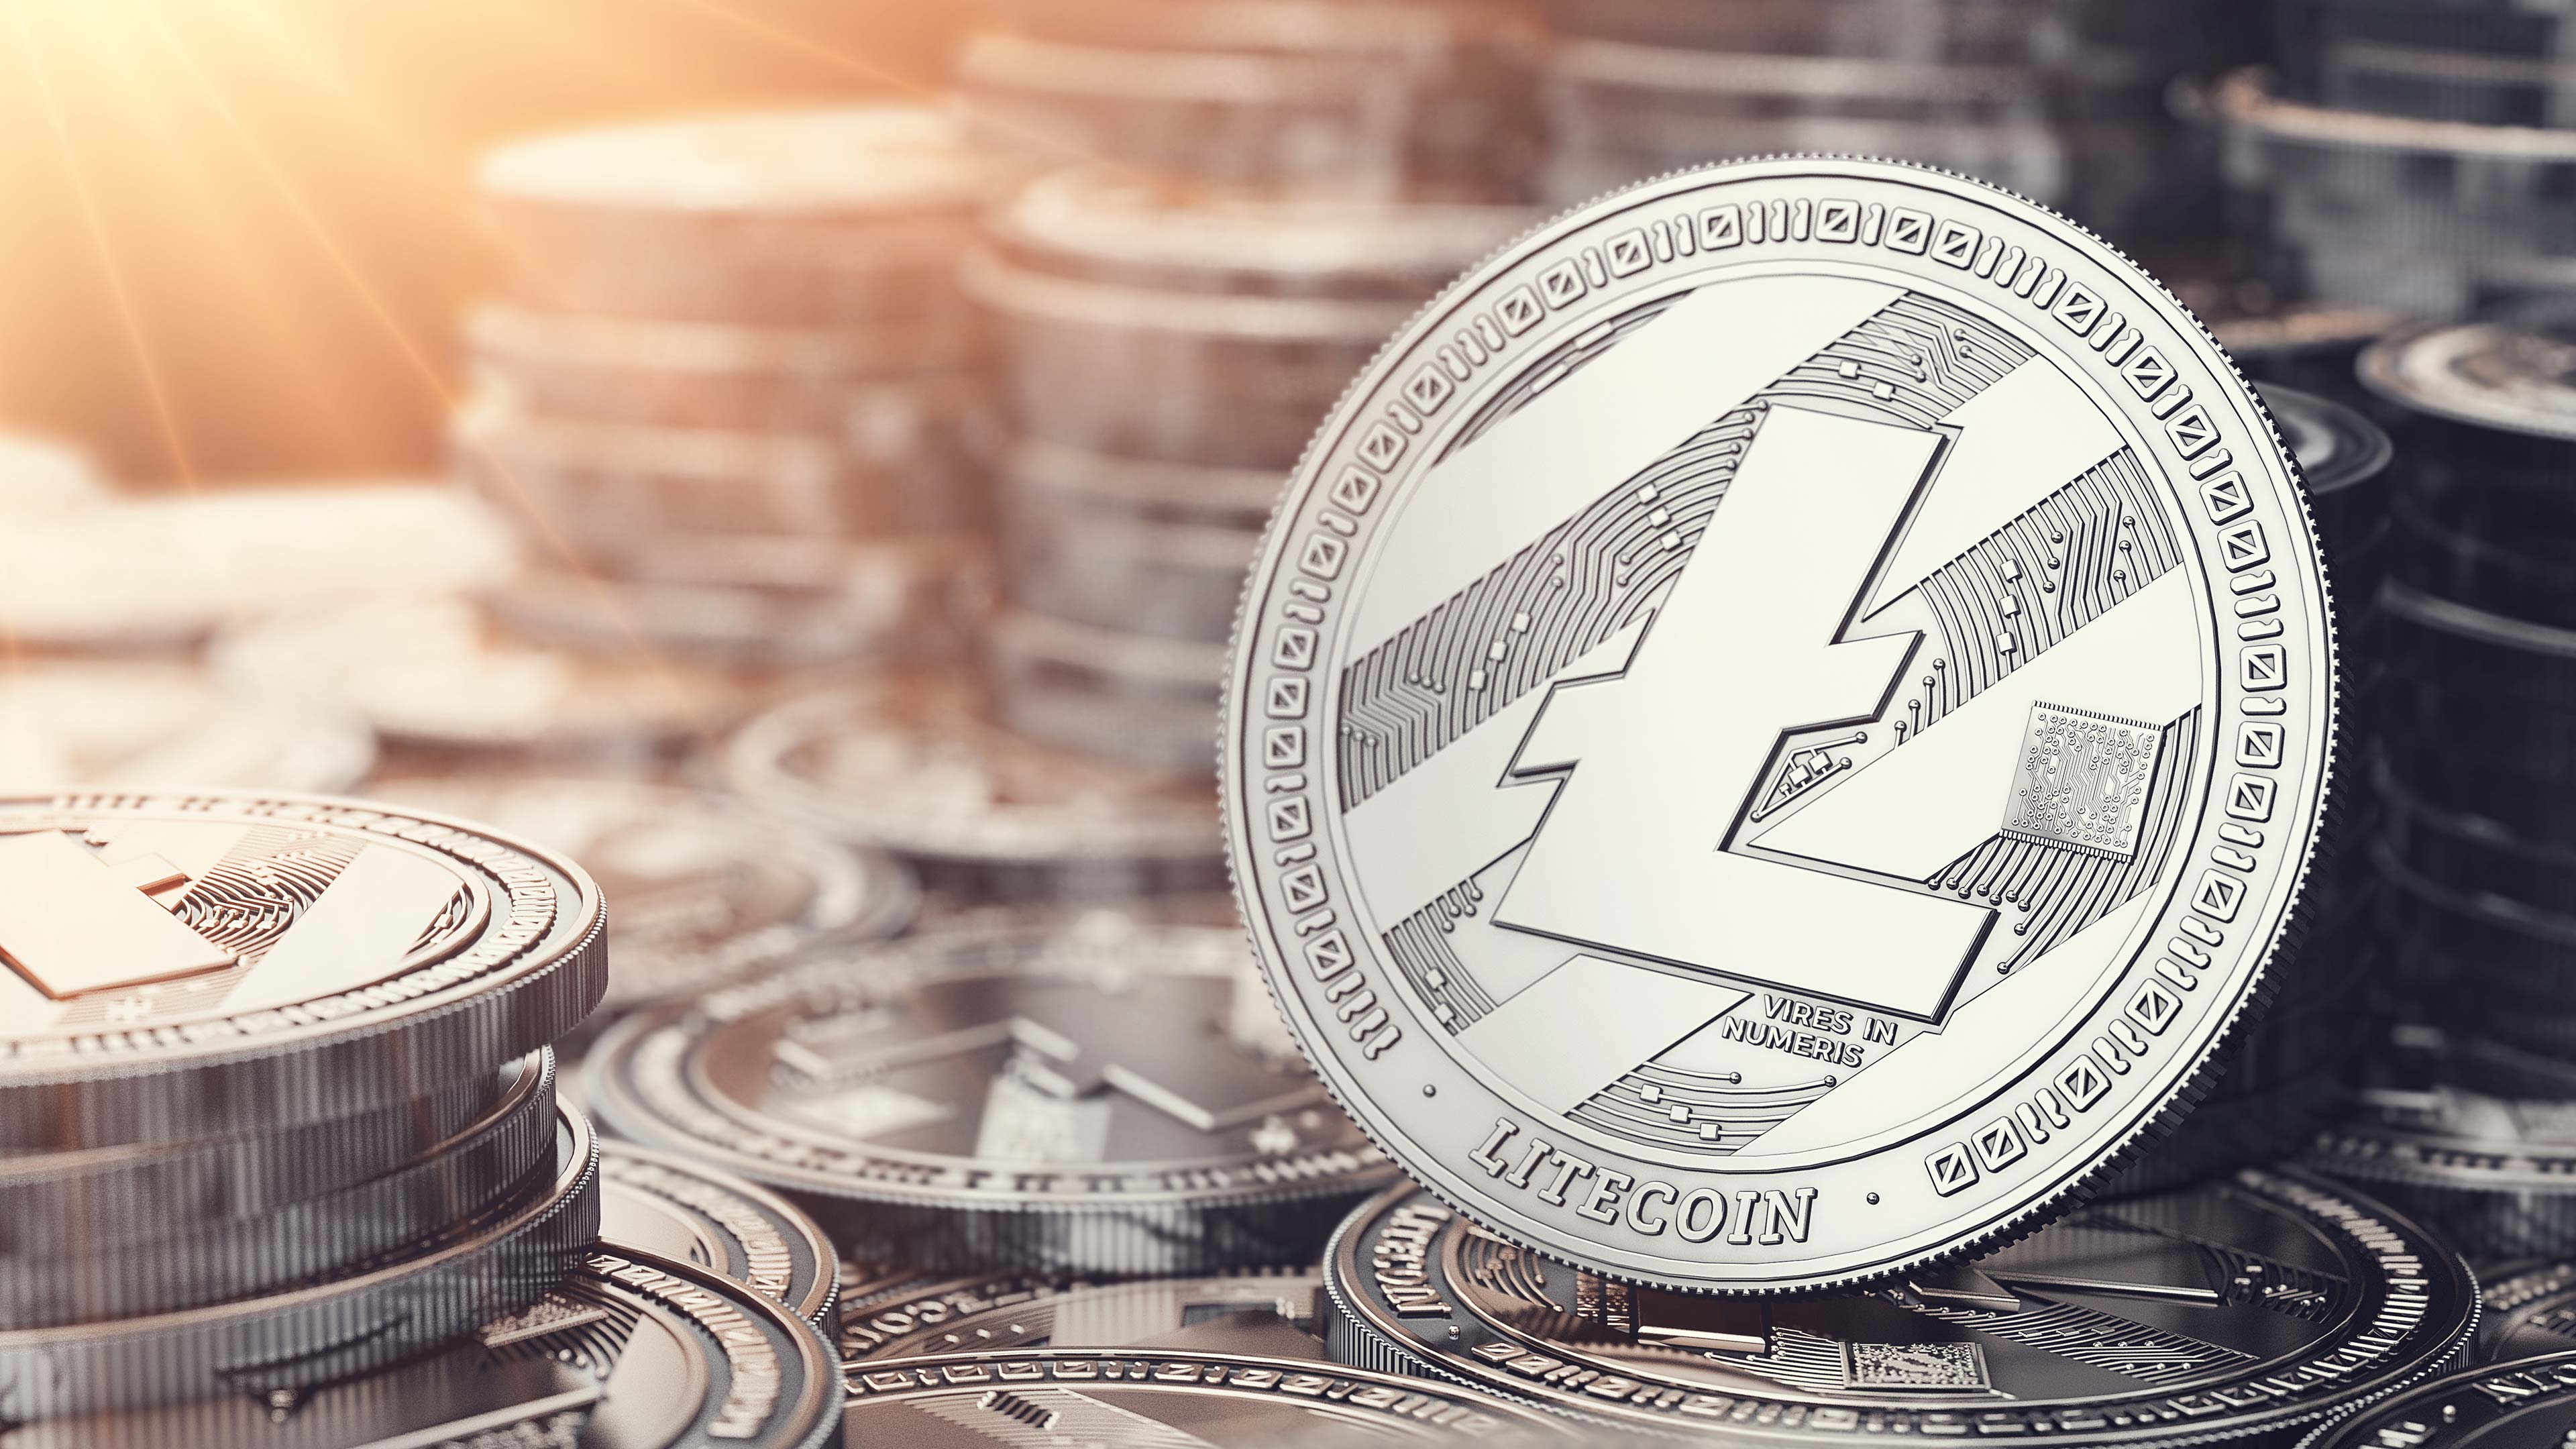 Top cryptocurrency listed — Litecoin